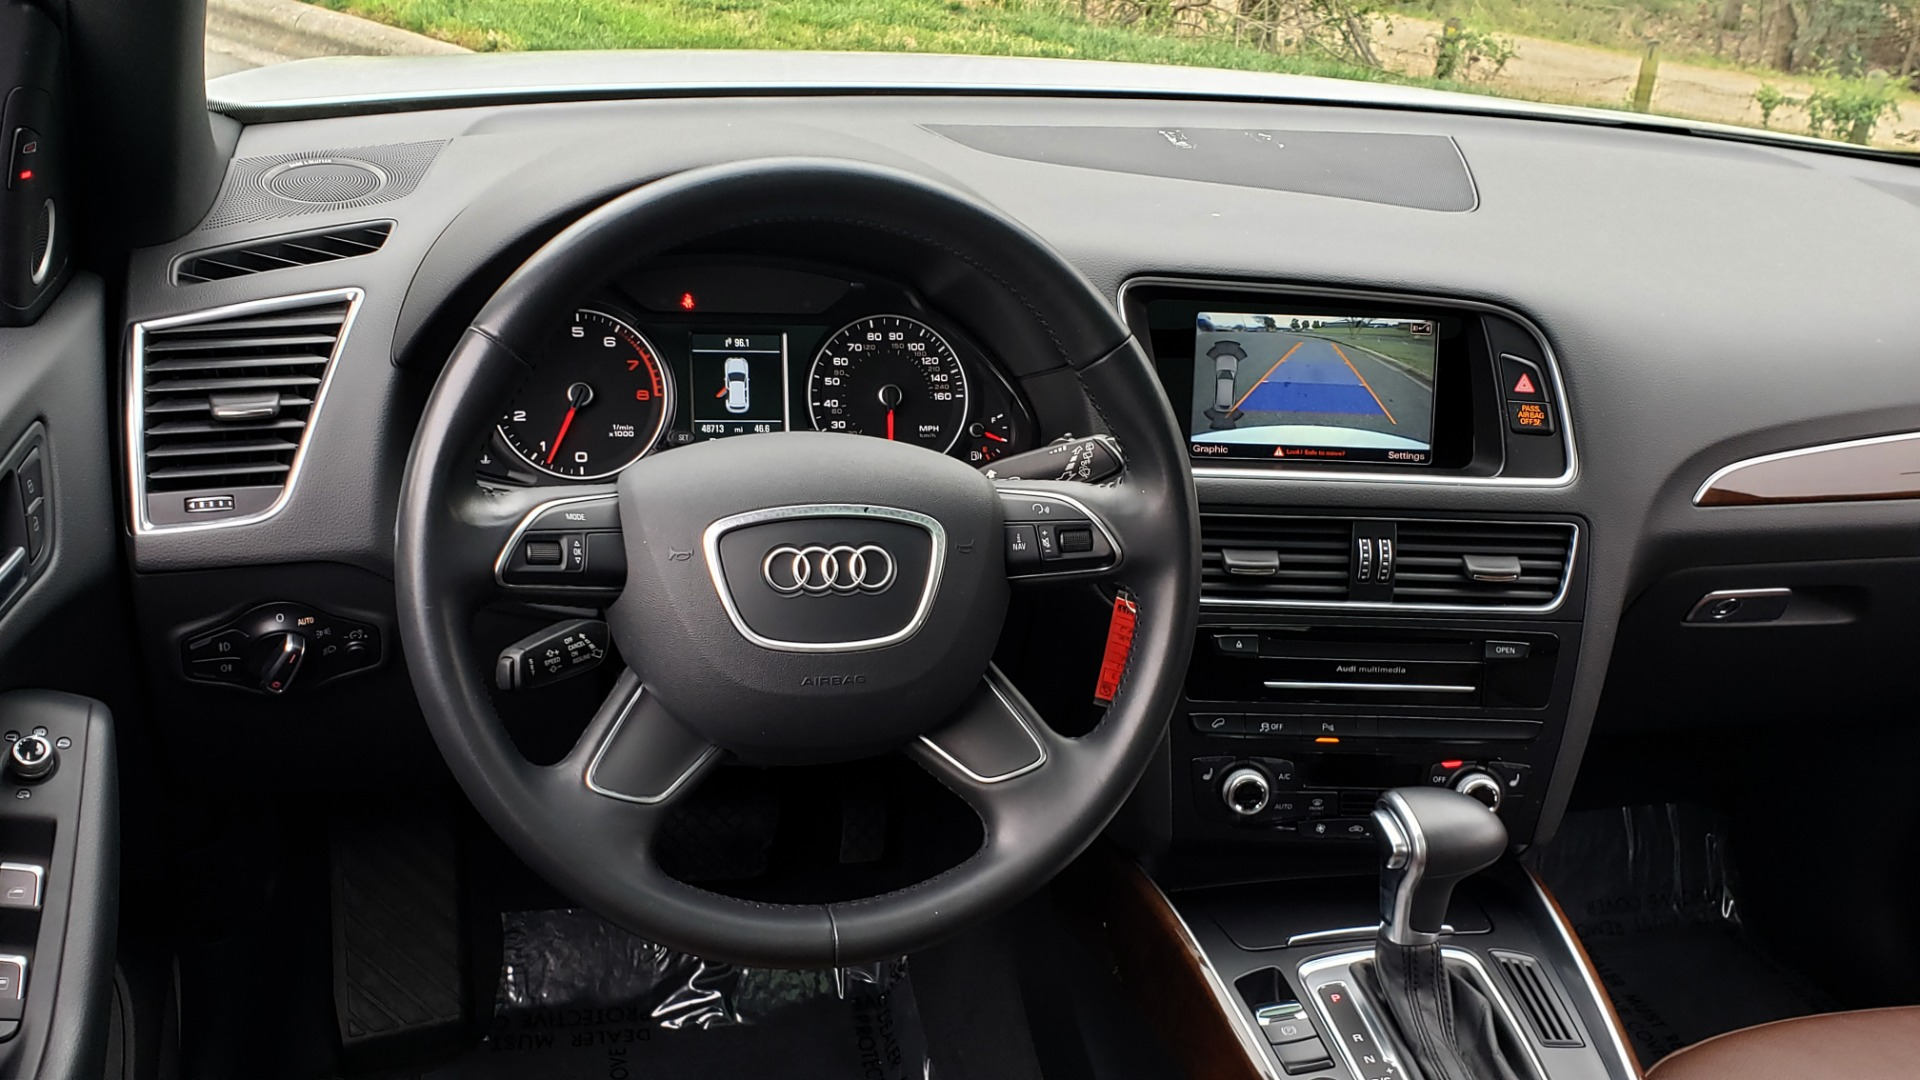 Used 2017 Audi Q5 PREMIUM PLUS / TECH / NAV / PANO-ROOF / B&O SND / REARVIEW for sale Sold at Formula Imports in Charlotte NC 28227 42